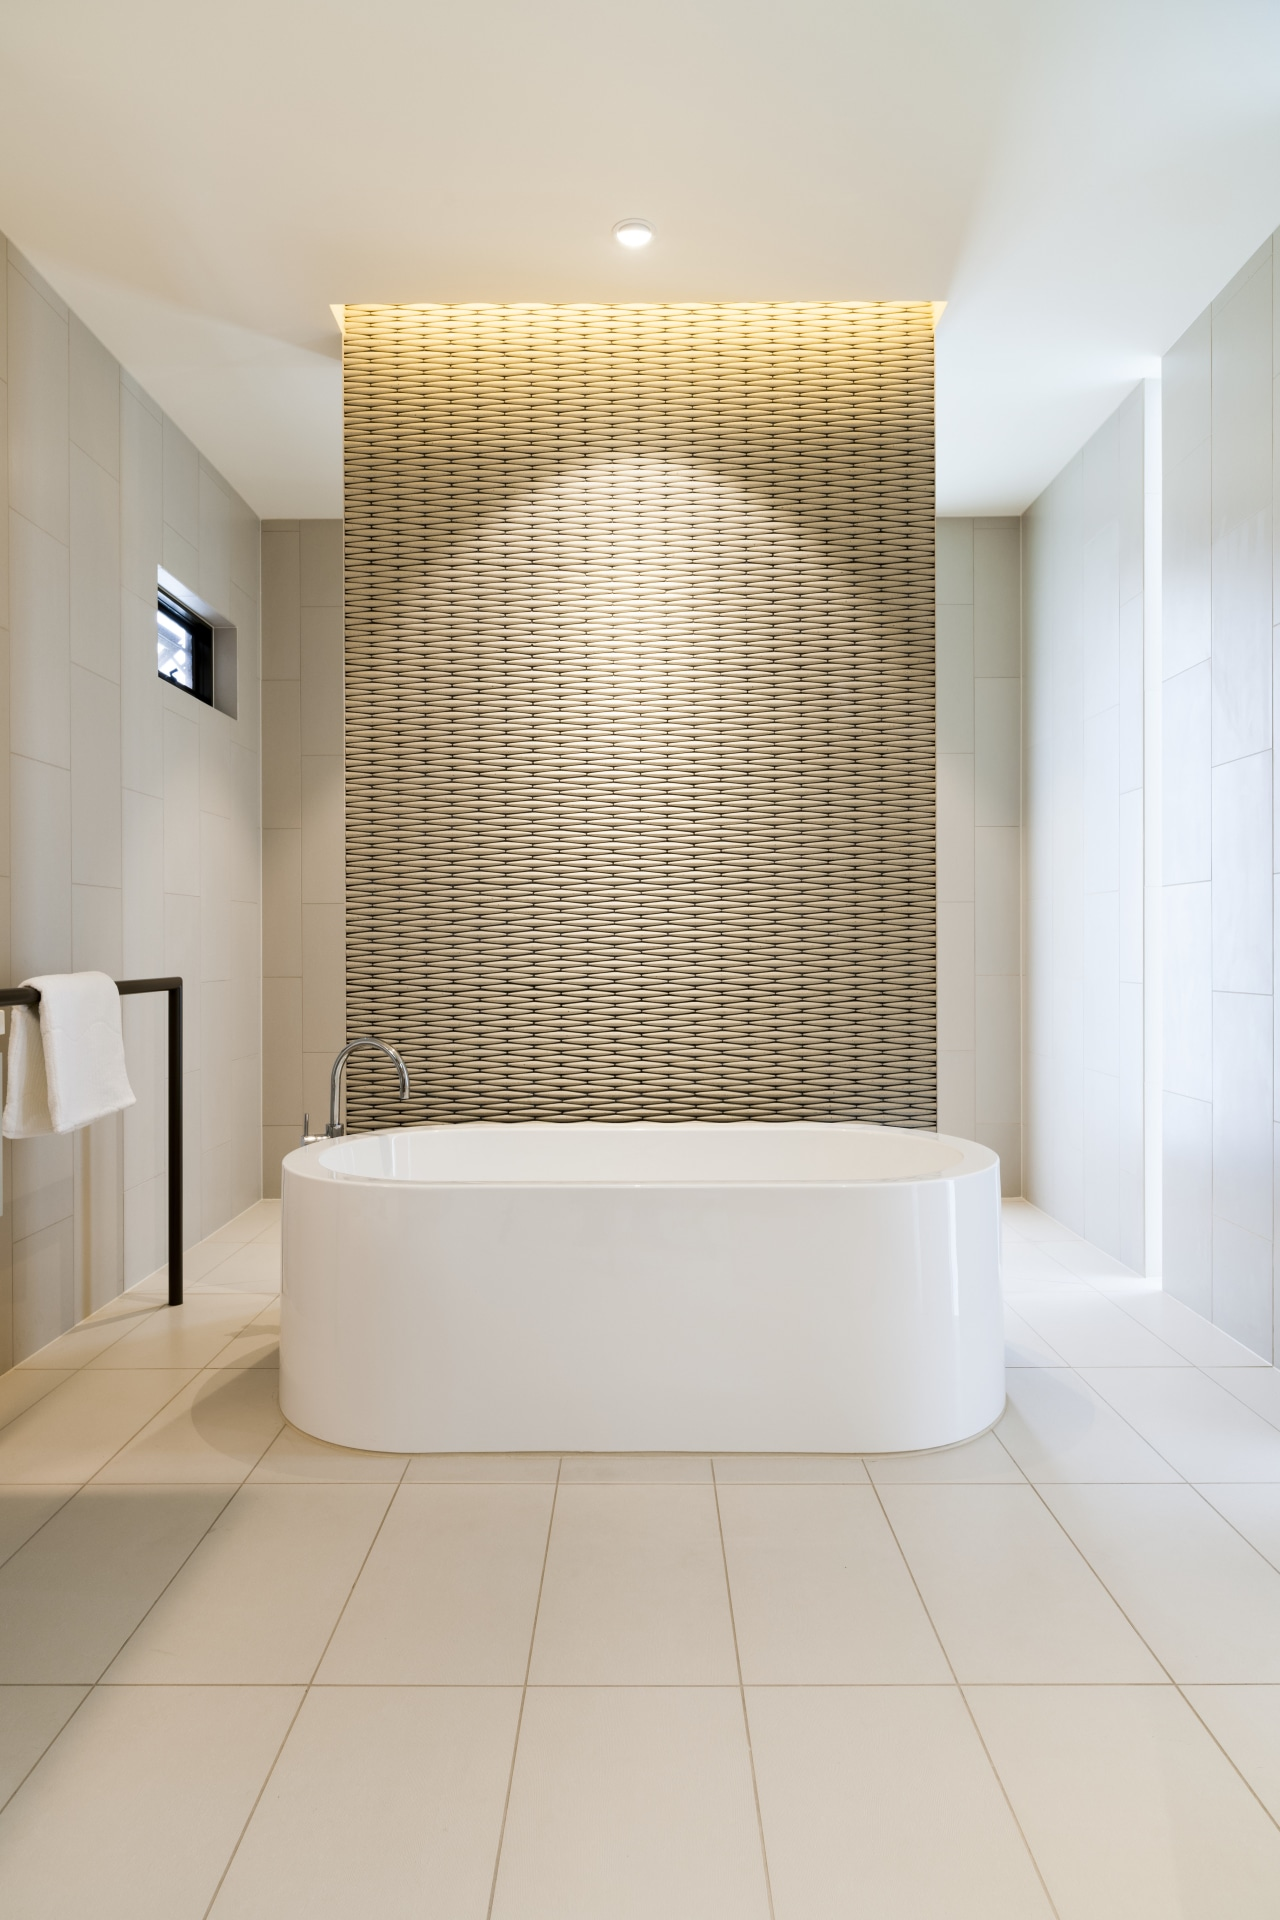 A freestanding bath with textured tilework on the architecture, bathroom, ceiling, daylighting, floor, flooring, interior design, room, tile, wall, gray